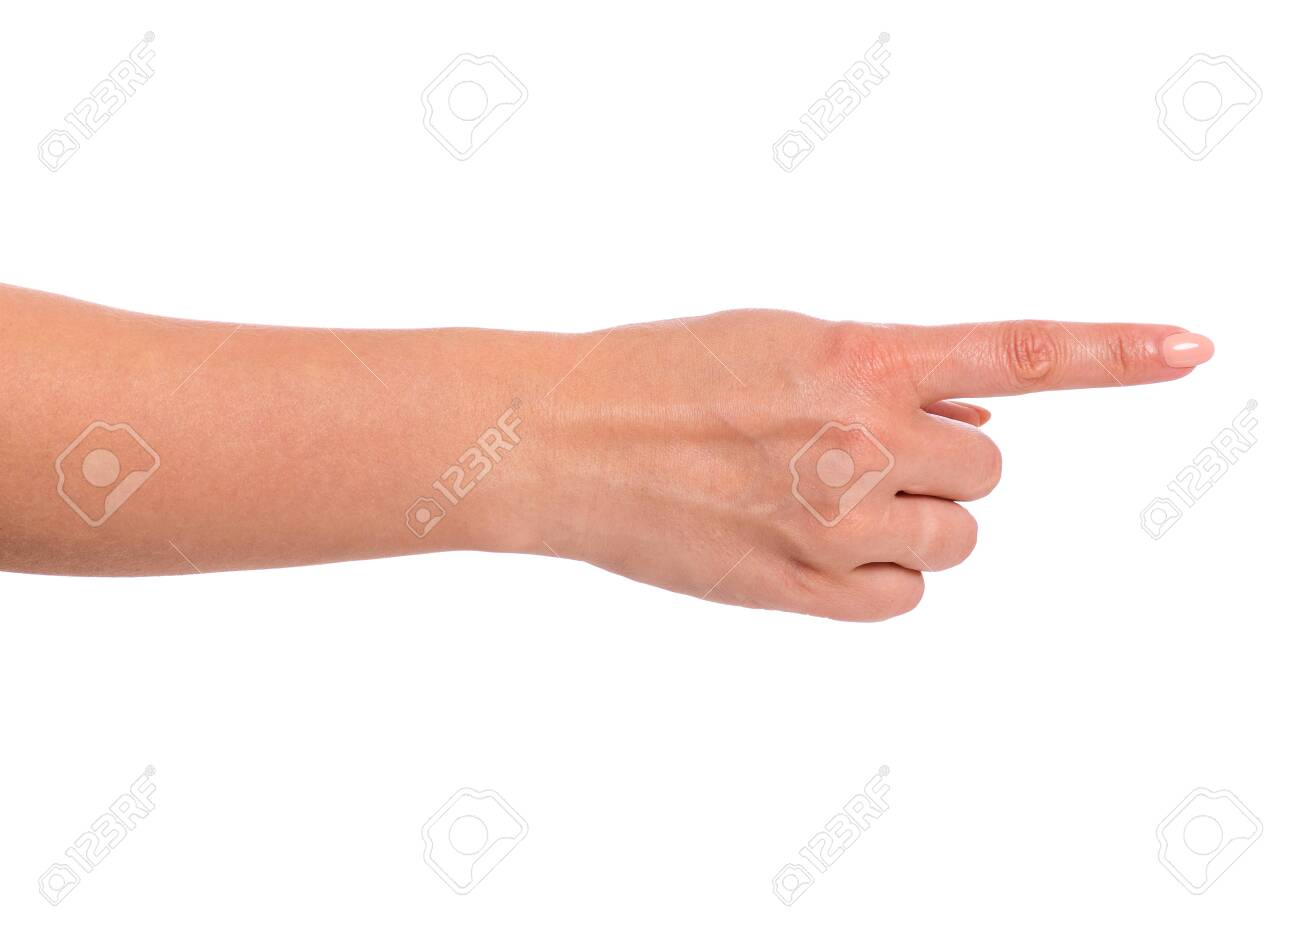 Female hand pointing something, isolated on white background. Beautiful hand close-up of woman with copy space. Finger pointing way. - 141760328